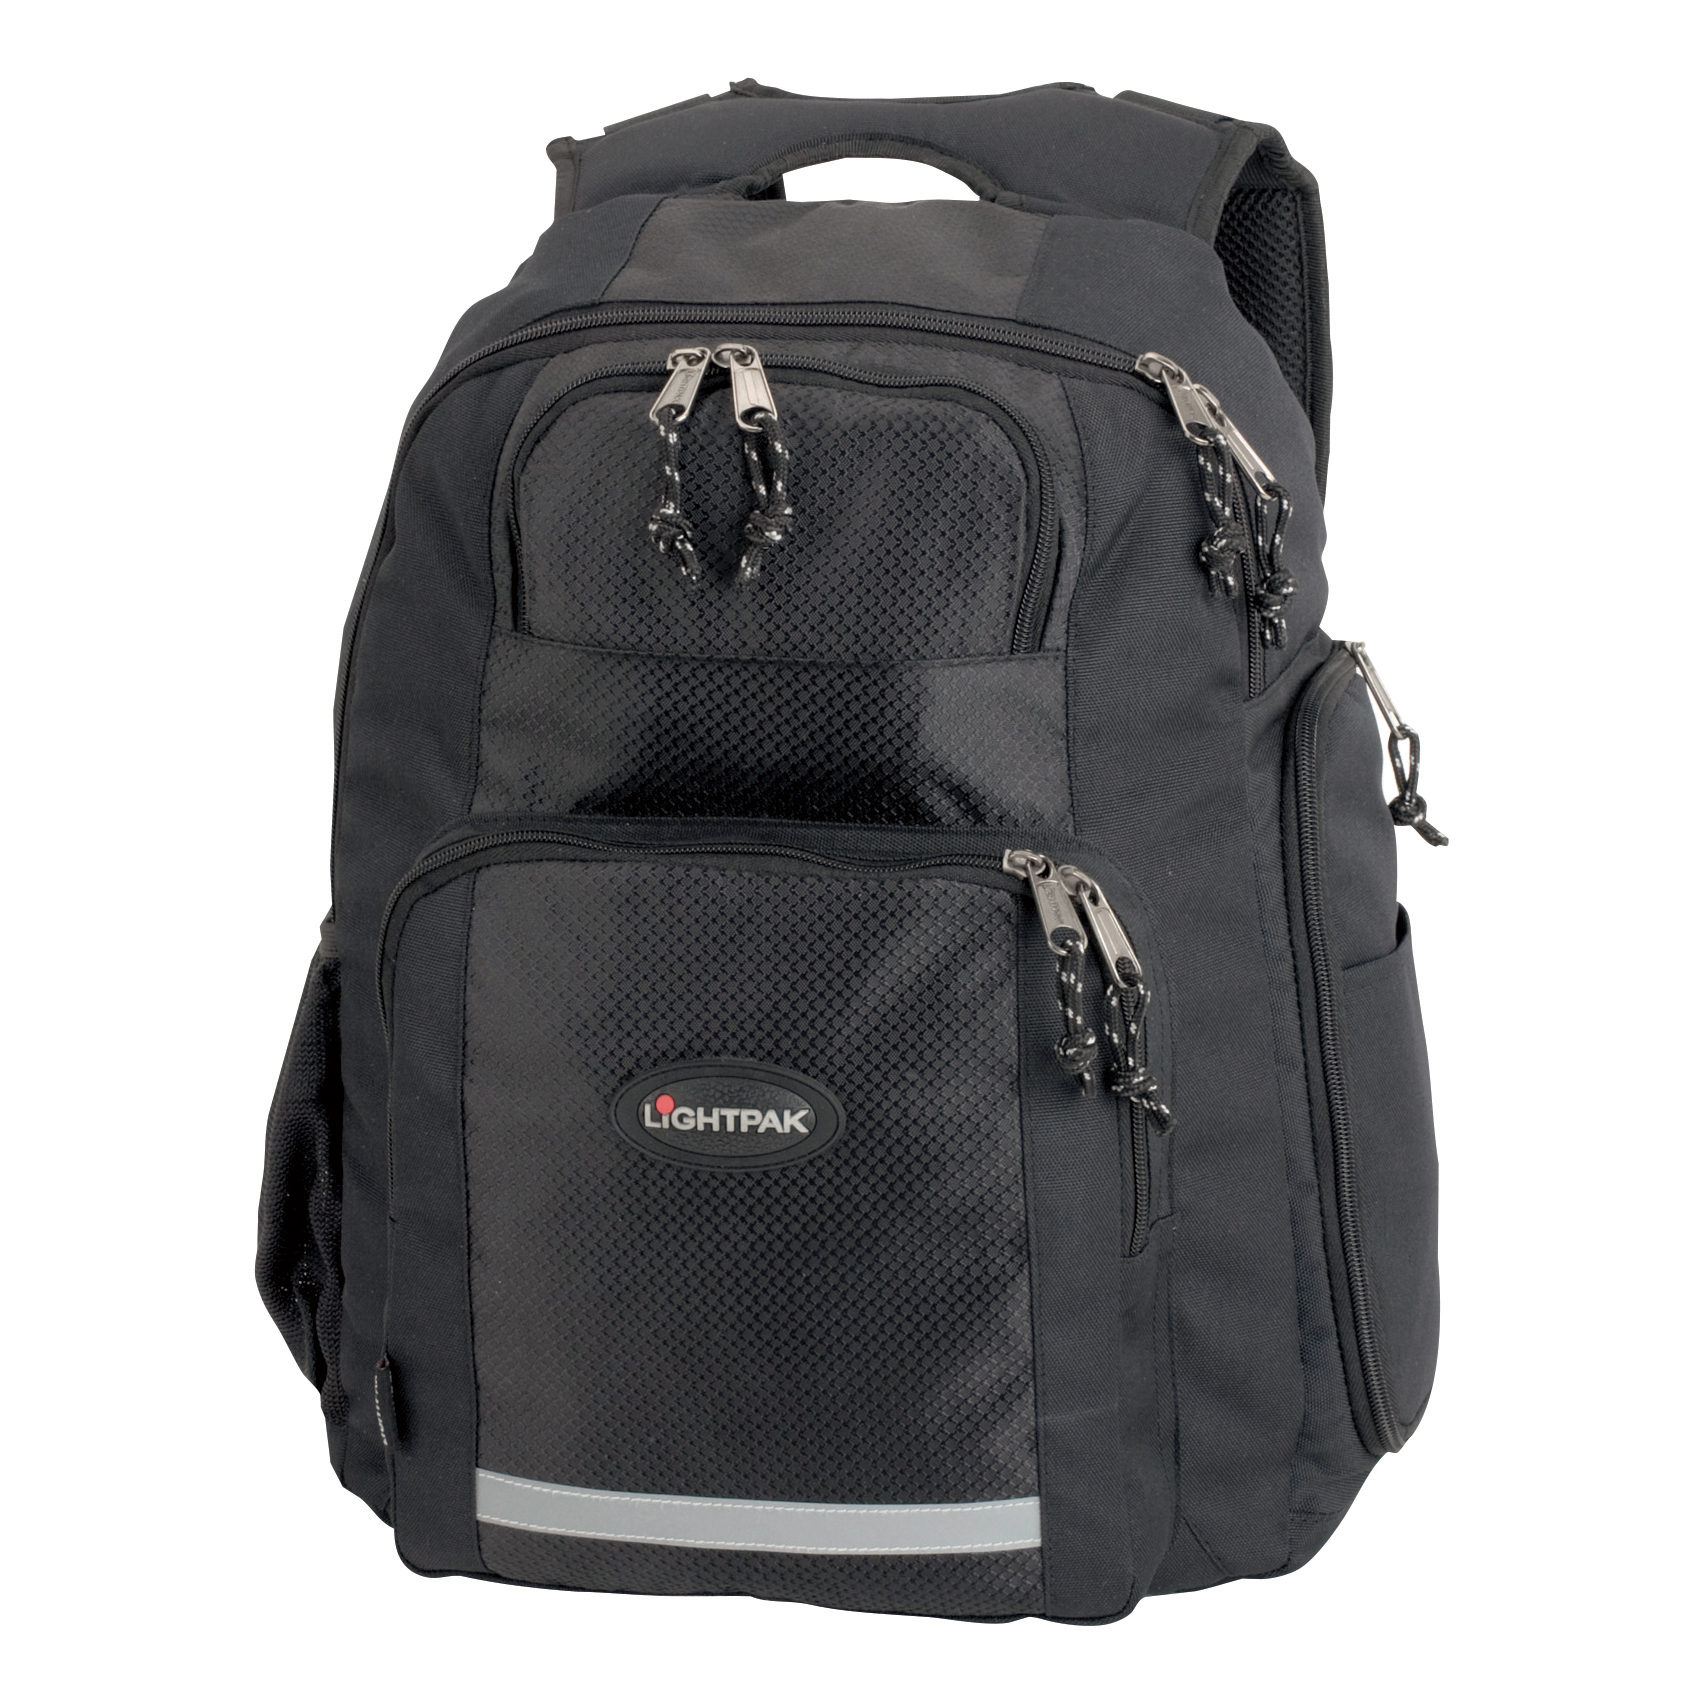 LightPak Safepak Backpack With 15in Laptop Case Polyester Black Ref 46053